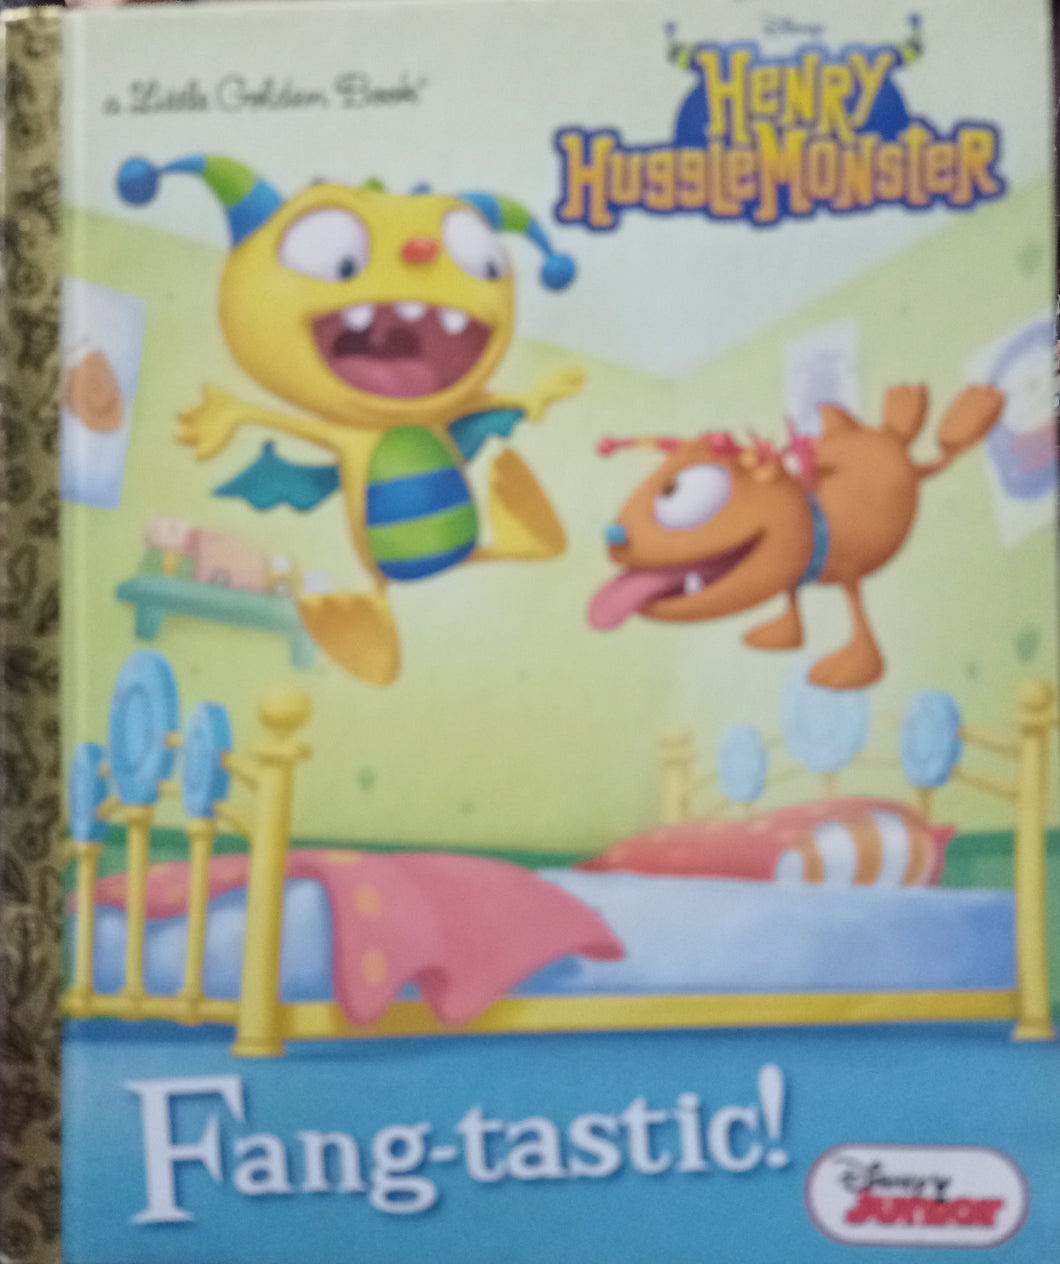 a little Golden Book Henry HuggleMonster Fang-tastic!